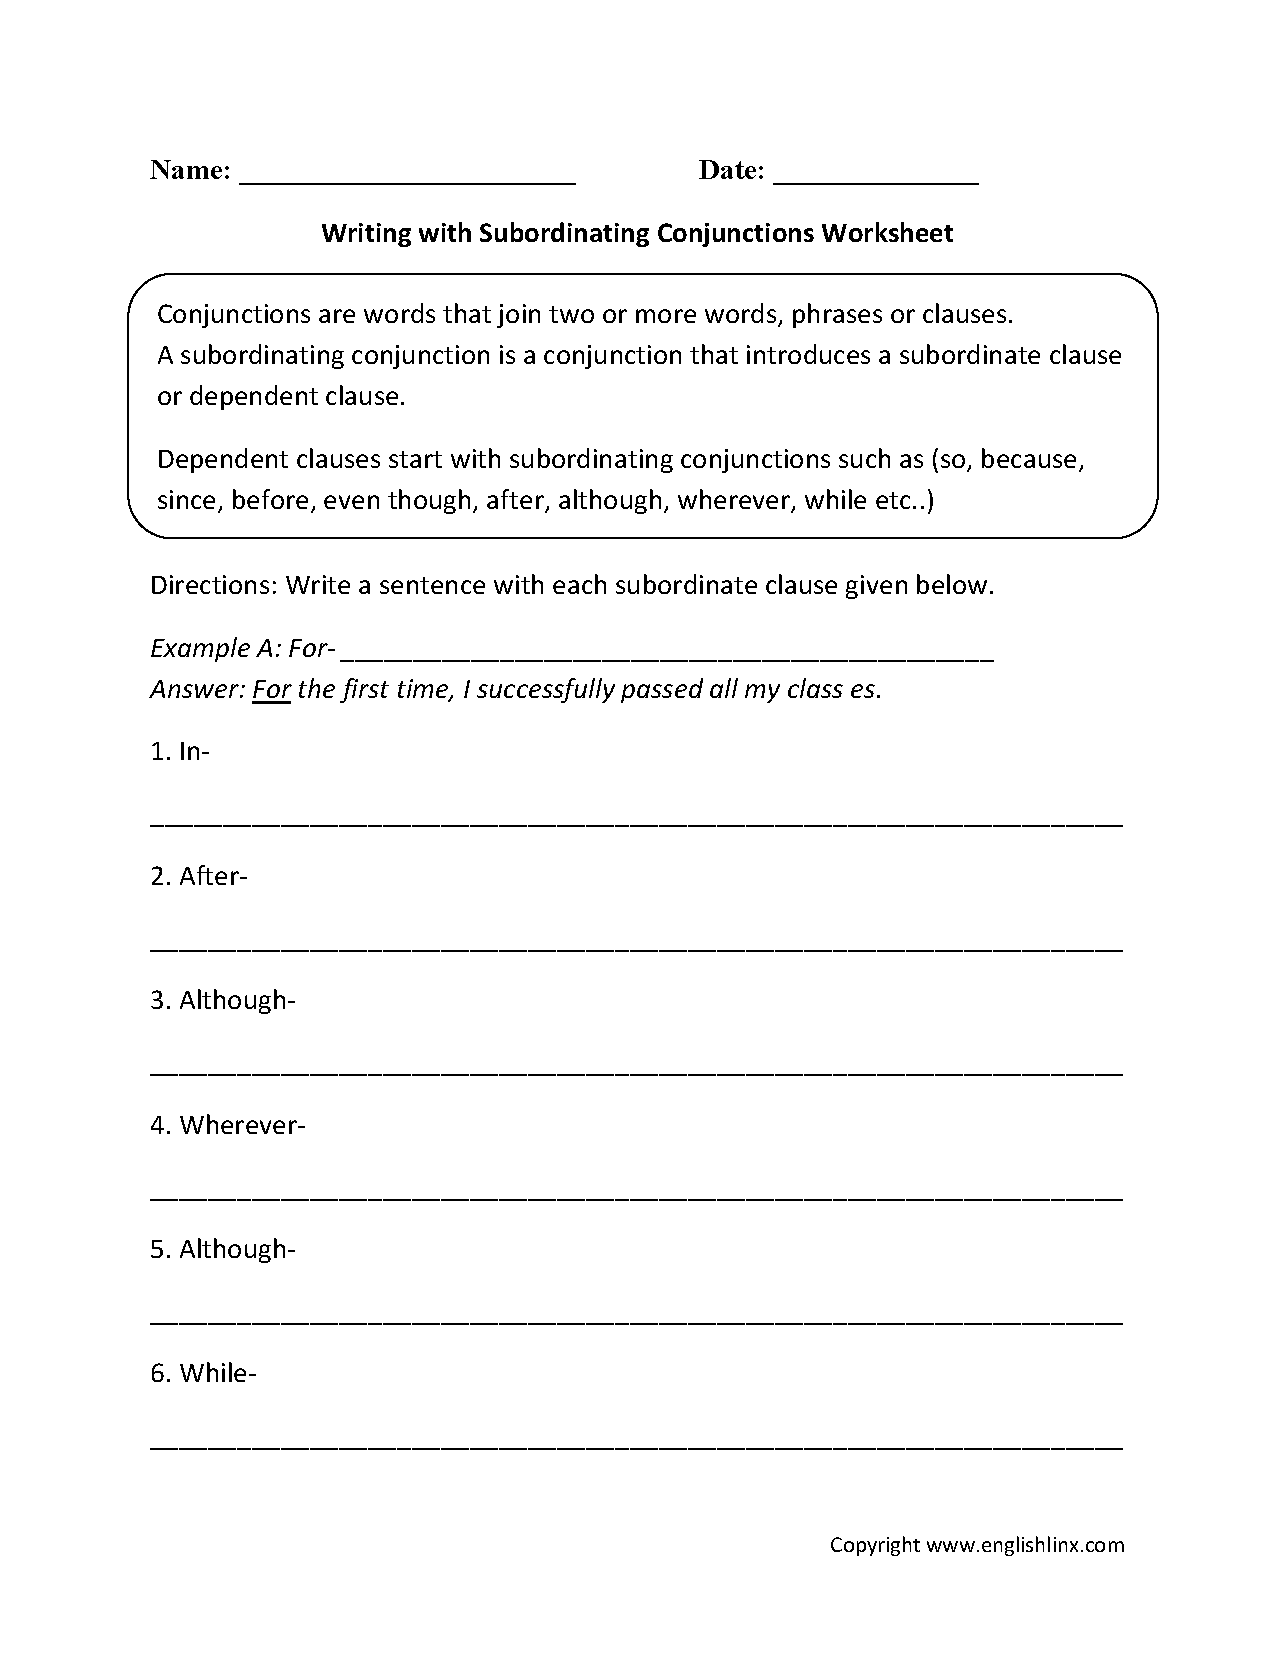 Worksheets Conjunctions Worksheet englishlinx com conjunctions worksheets subordinating worksheets